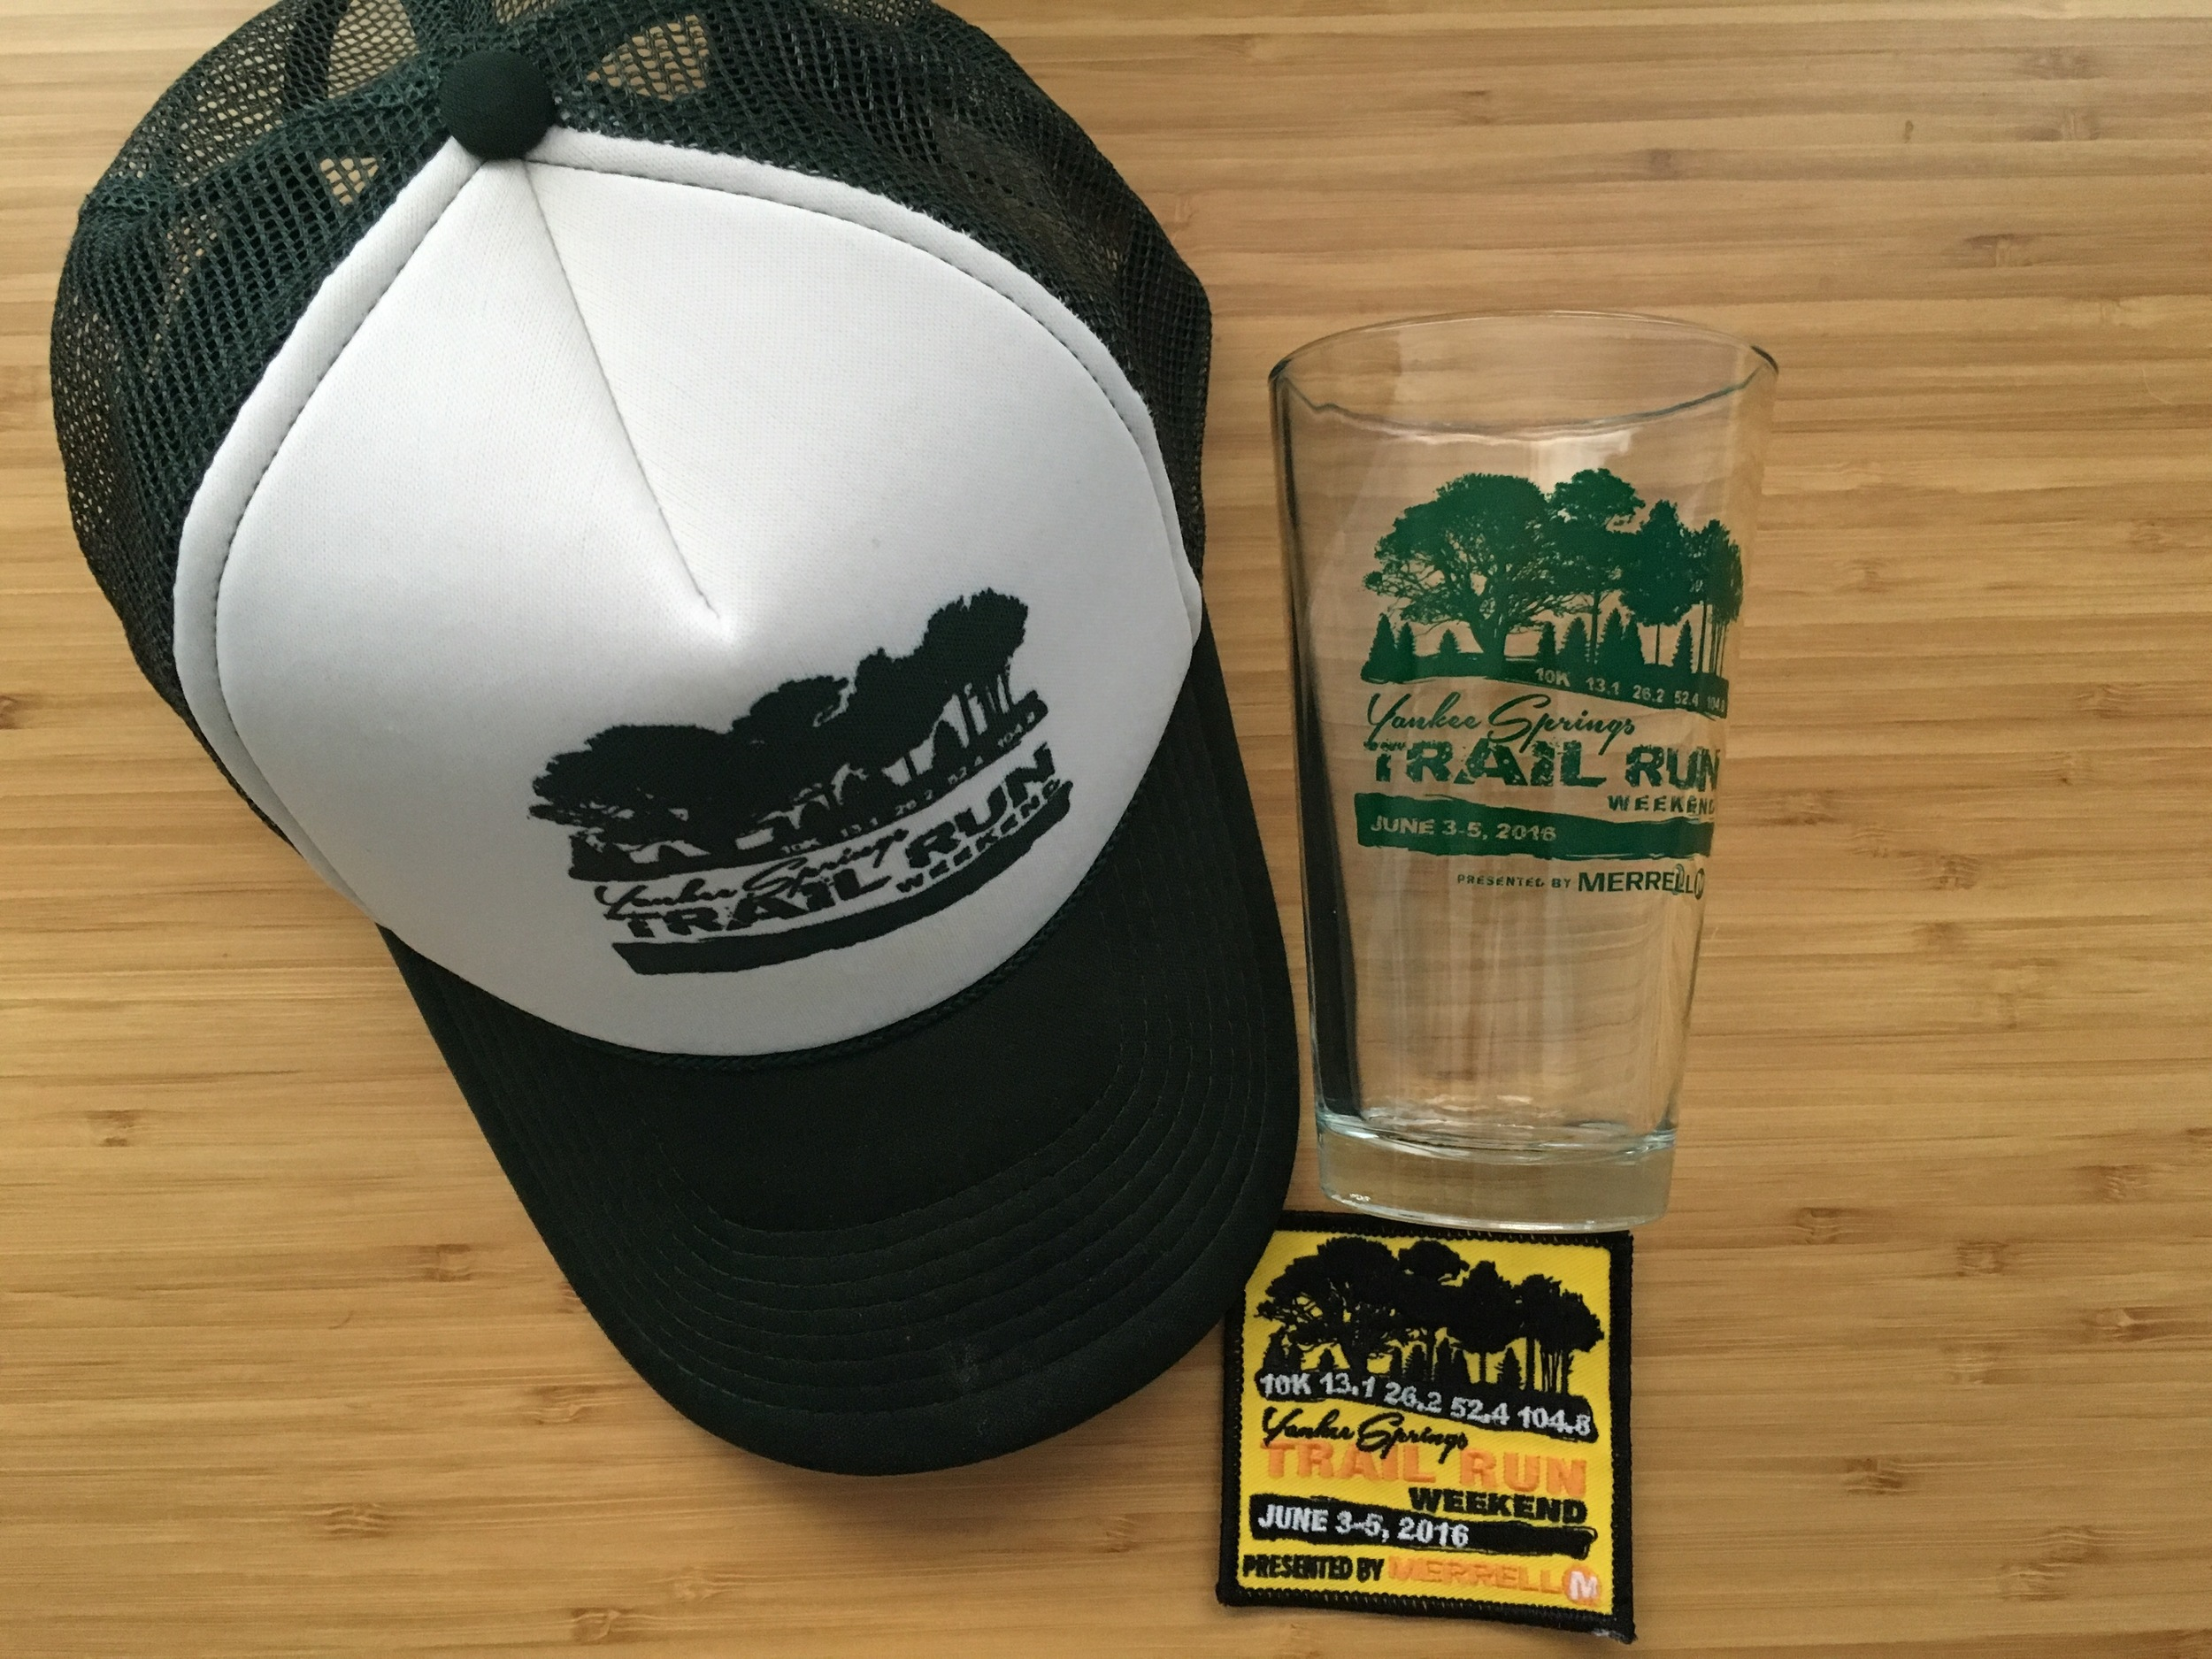 Actually useful race swag (hat, glass, and patch) instead of medal. Thanks!